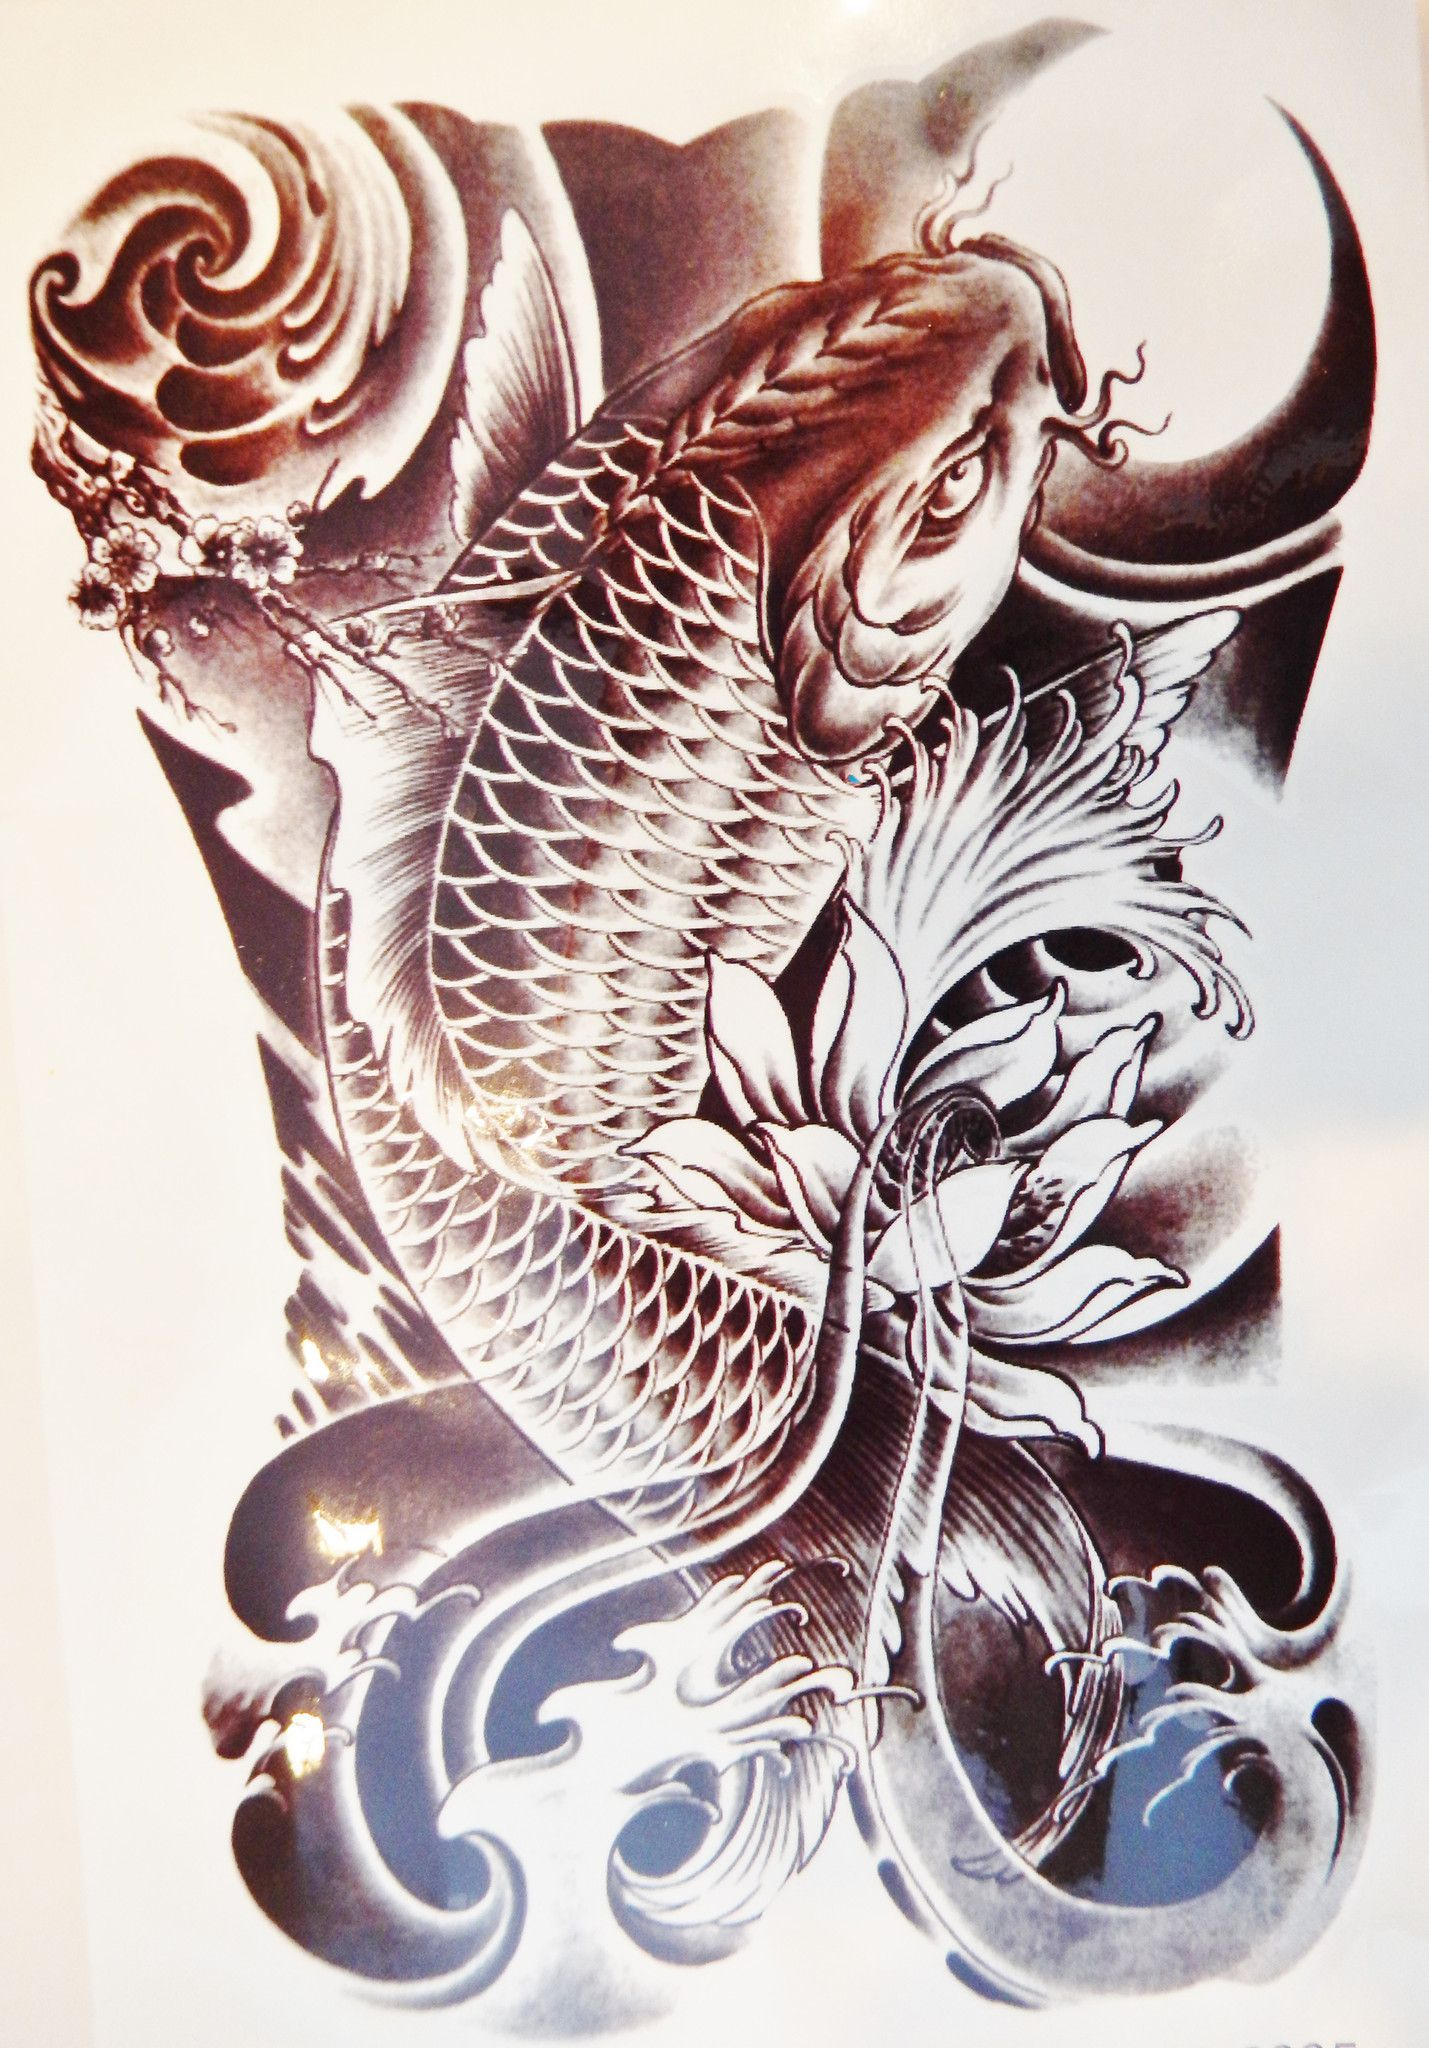 Tattoos for men praying hands large black koi fish temporary tattoo  koi large black and tattoo